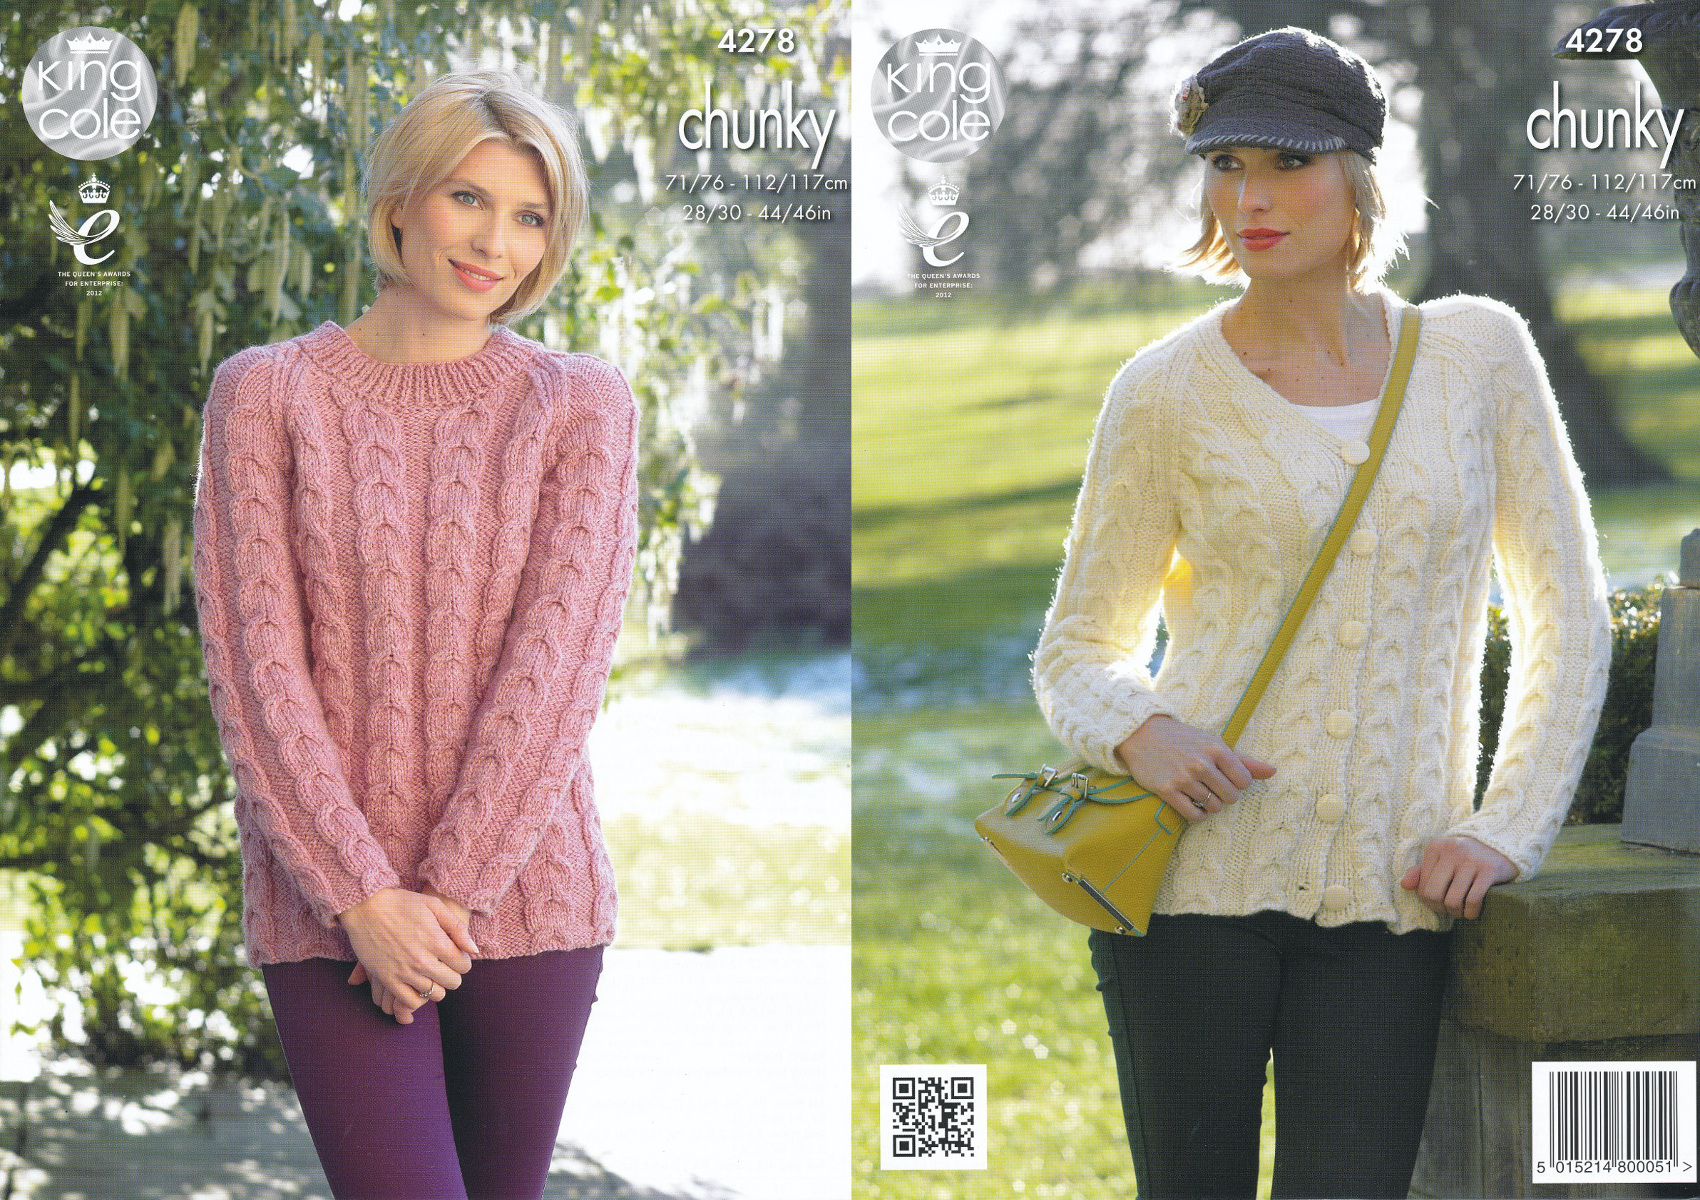 Woman Weekly Knitting Patterns Details About King Cole Womens Chunky Knitting Pattern Ladies Cable Knit Sweater Cardigan 4278